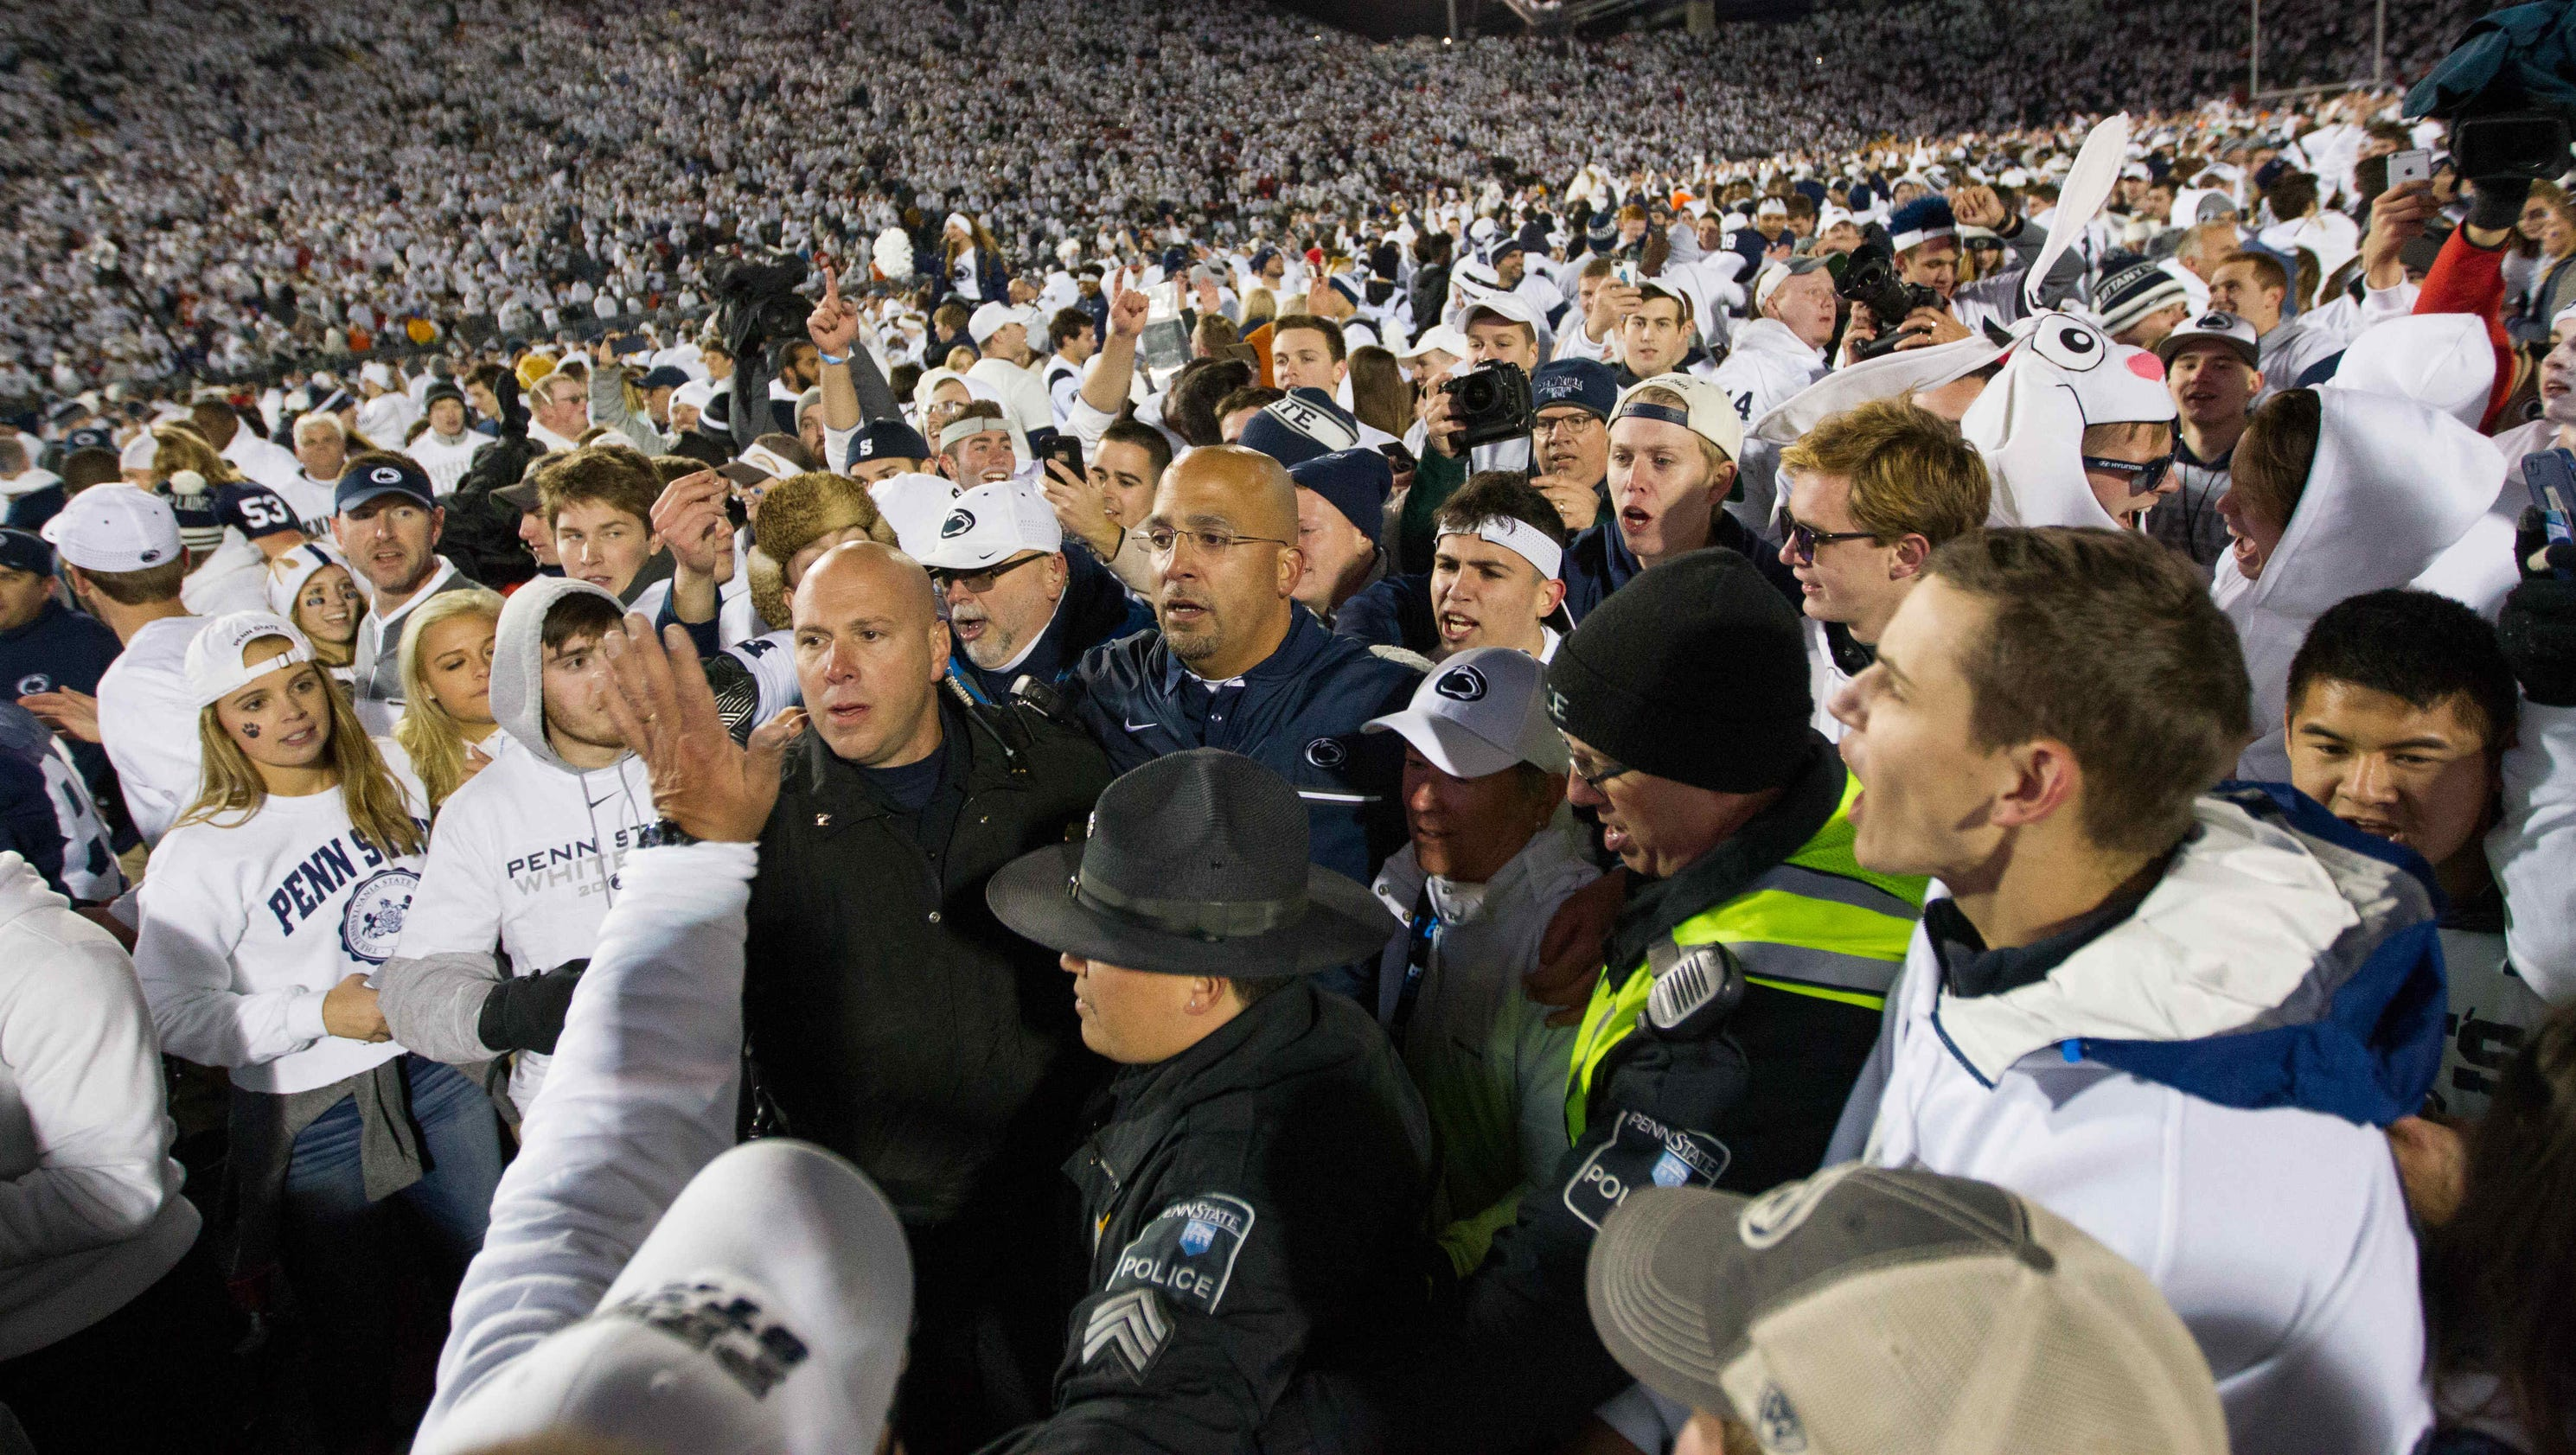 636128178371057744-usp-ncaa-football-ohio-state-at-penn-state-86185882